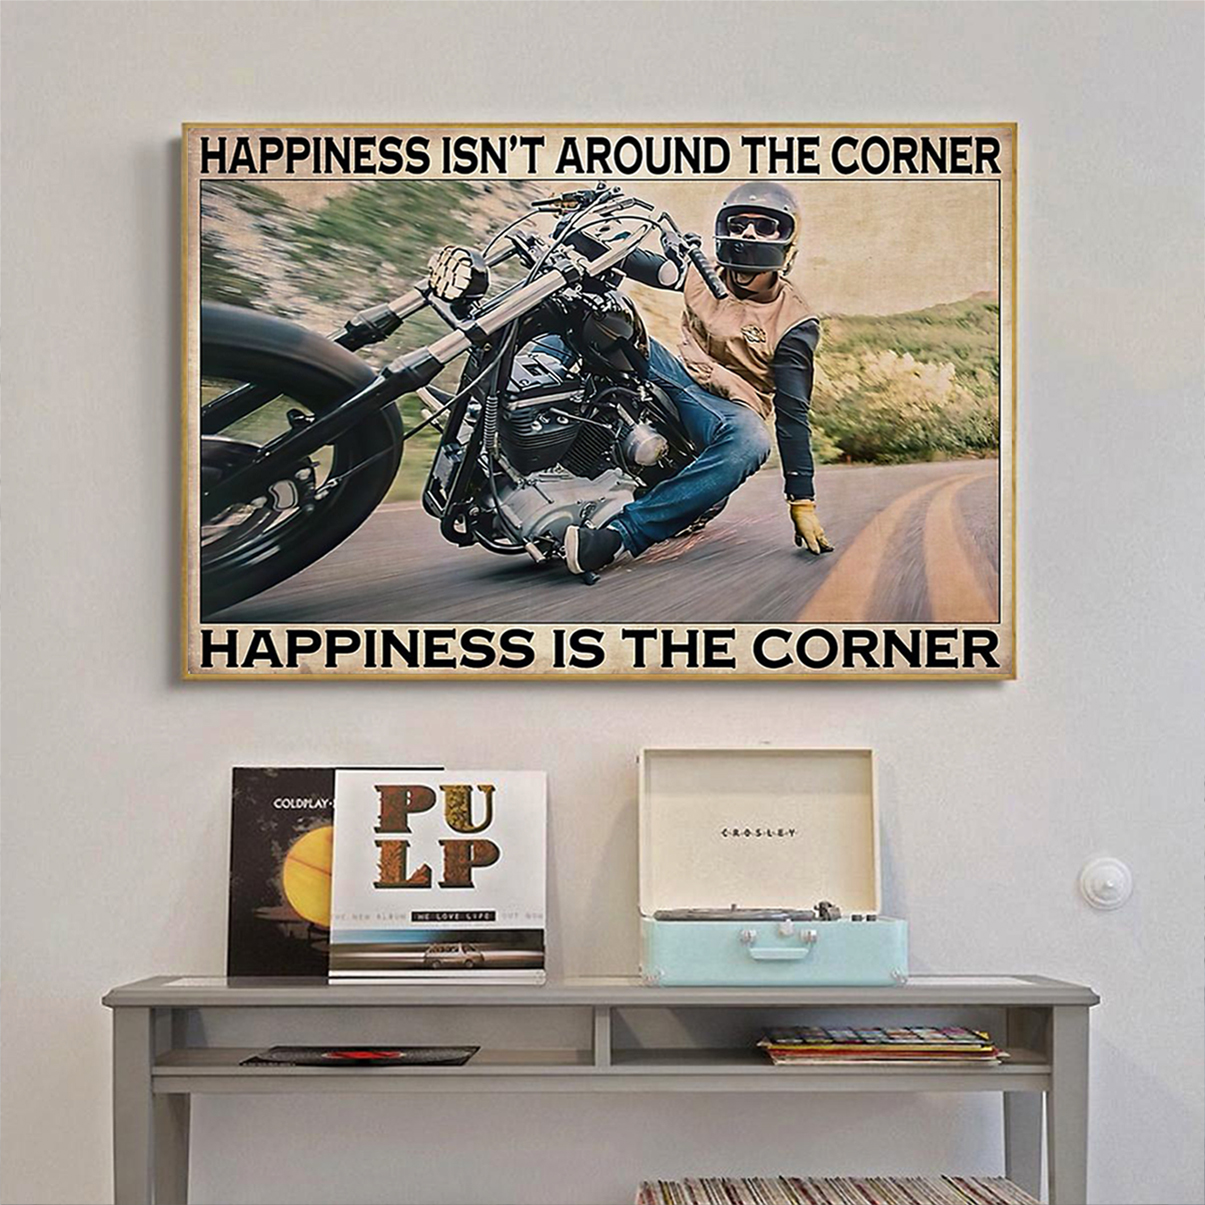 Motorcycle corner hapiness isn't around the corner poster A1